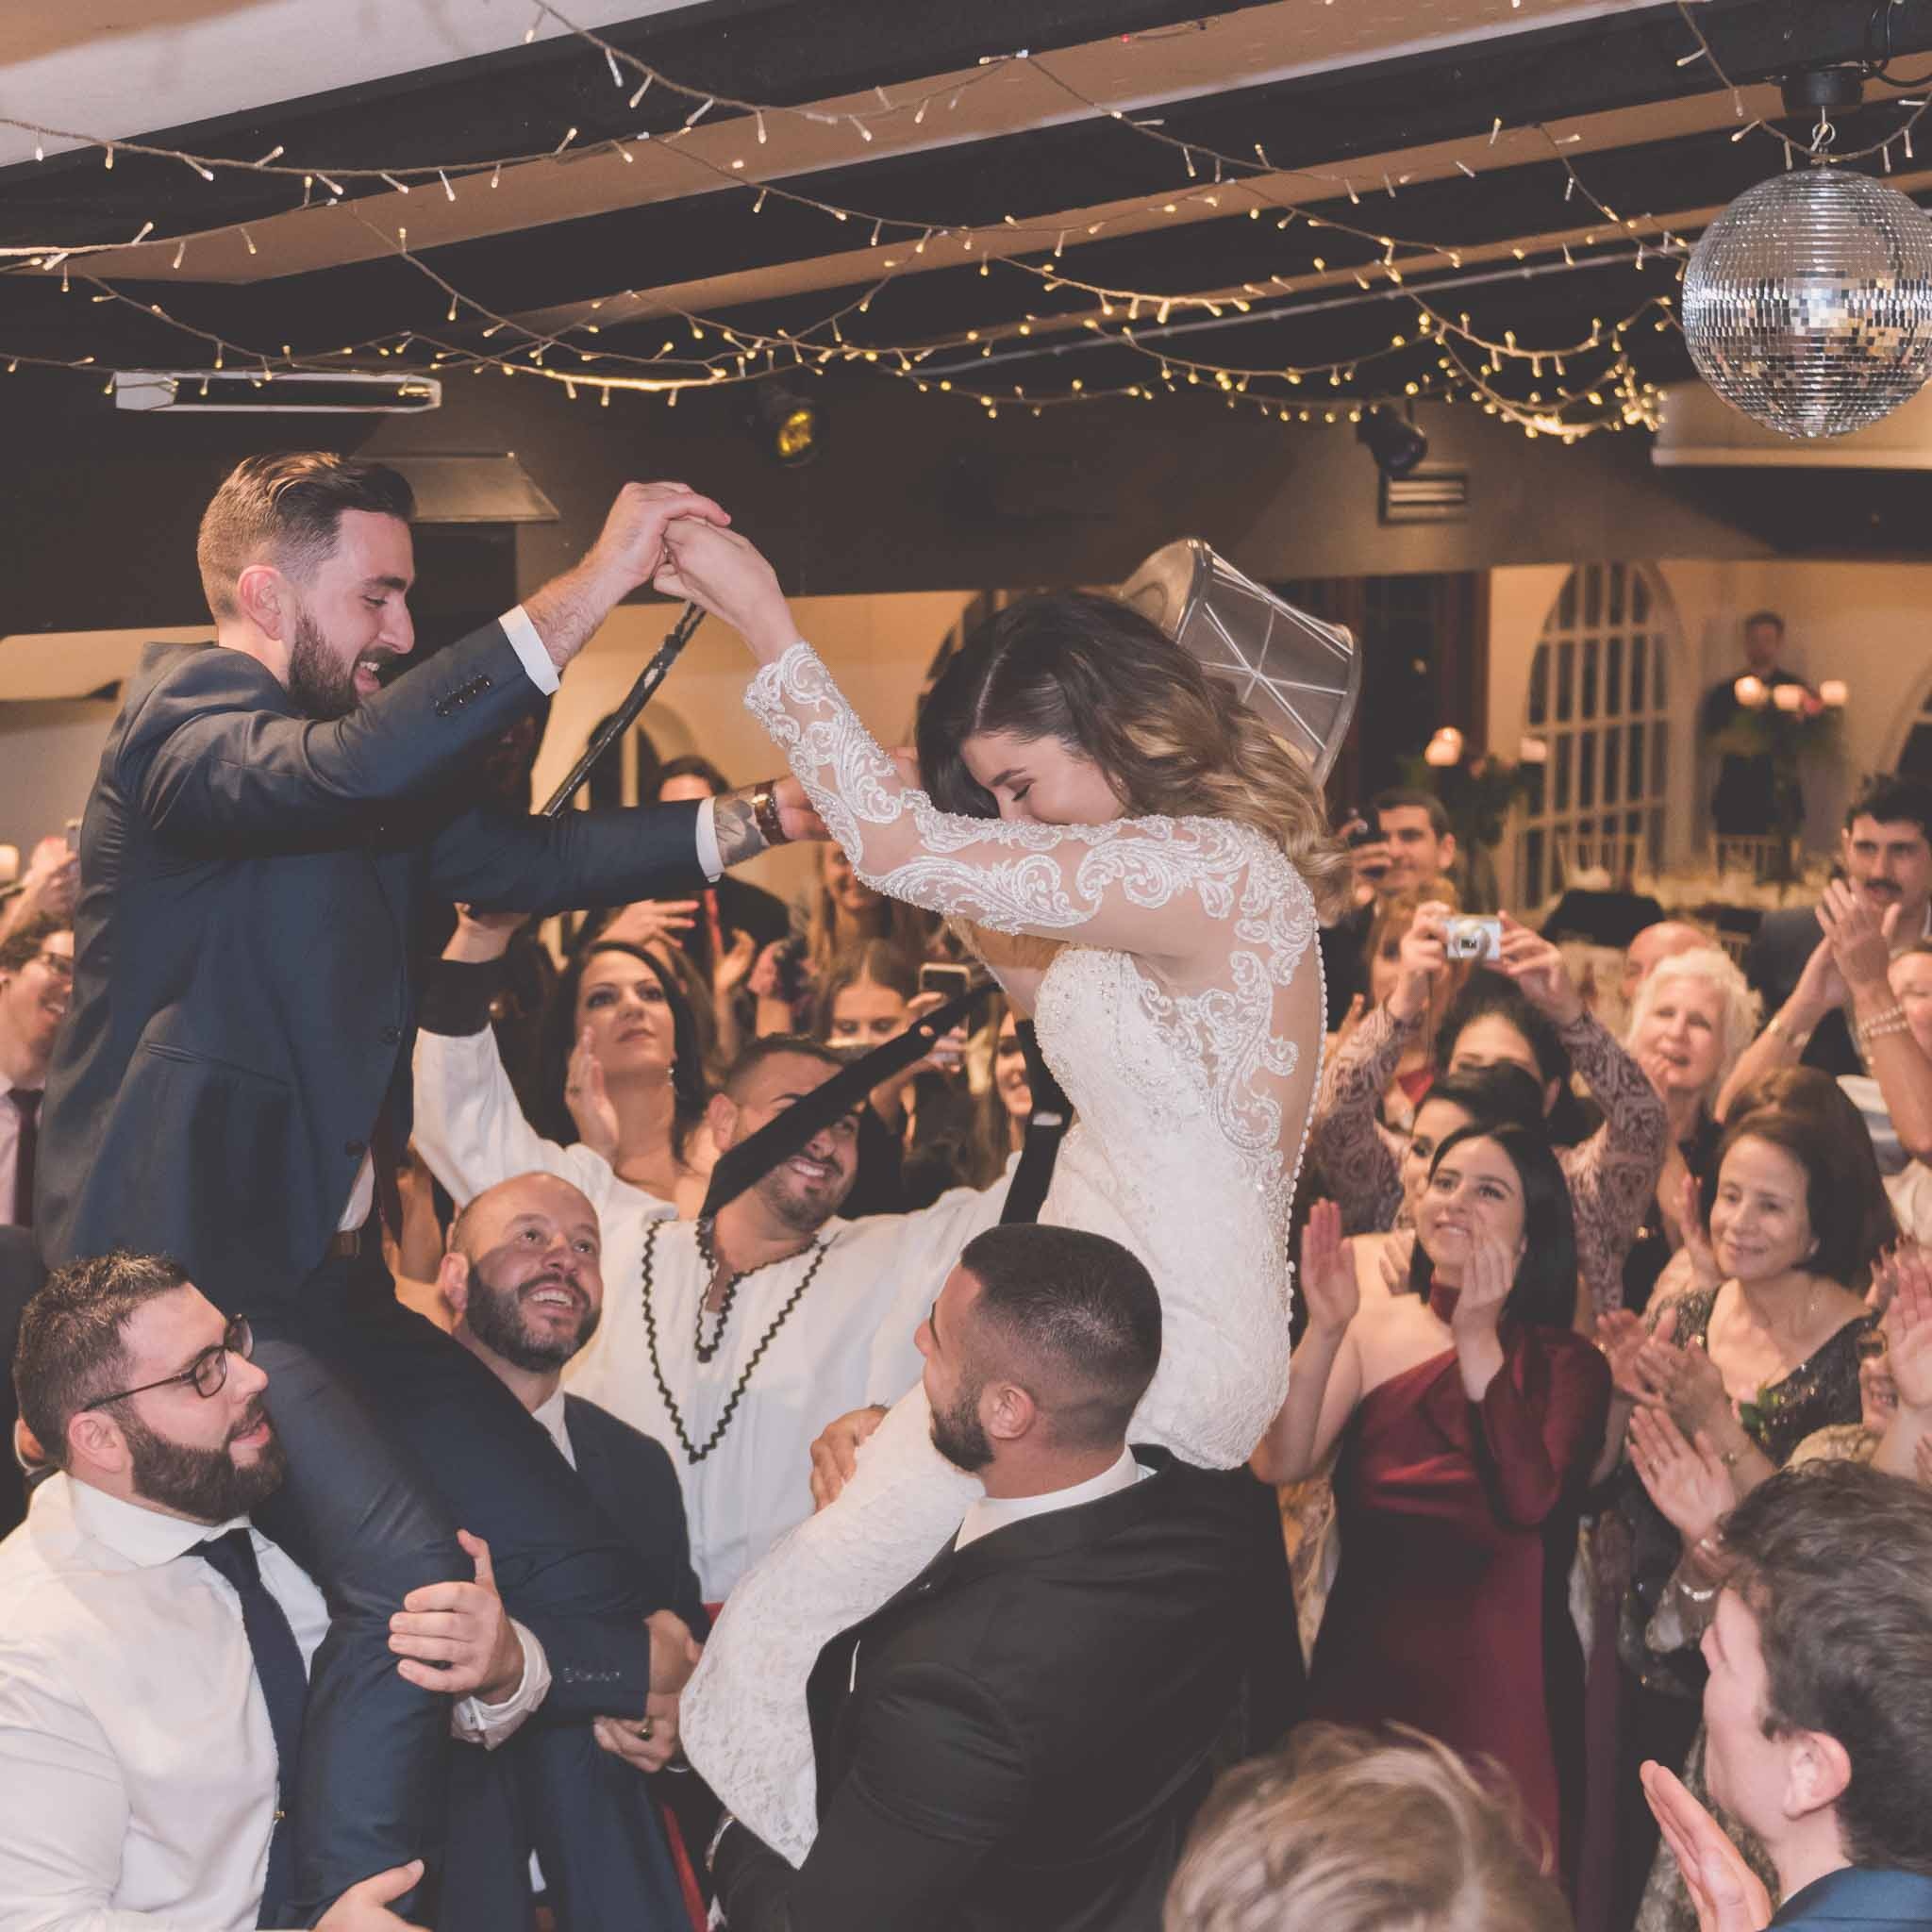 A Chateau Wyuna wedding with a bride and groom dancing on the shoulders of their guests